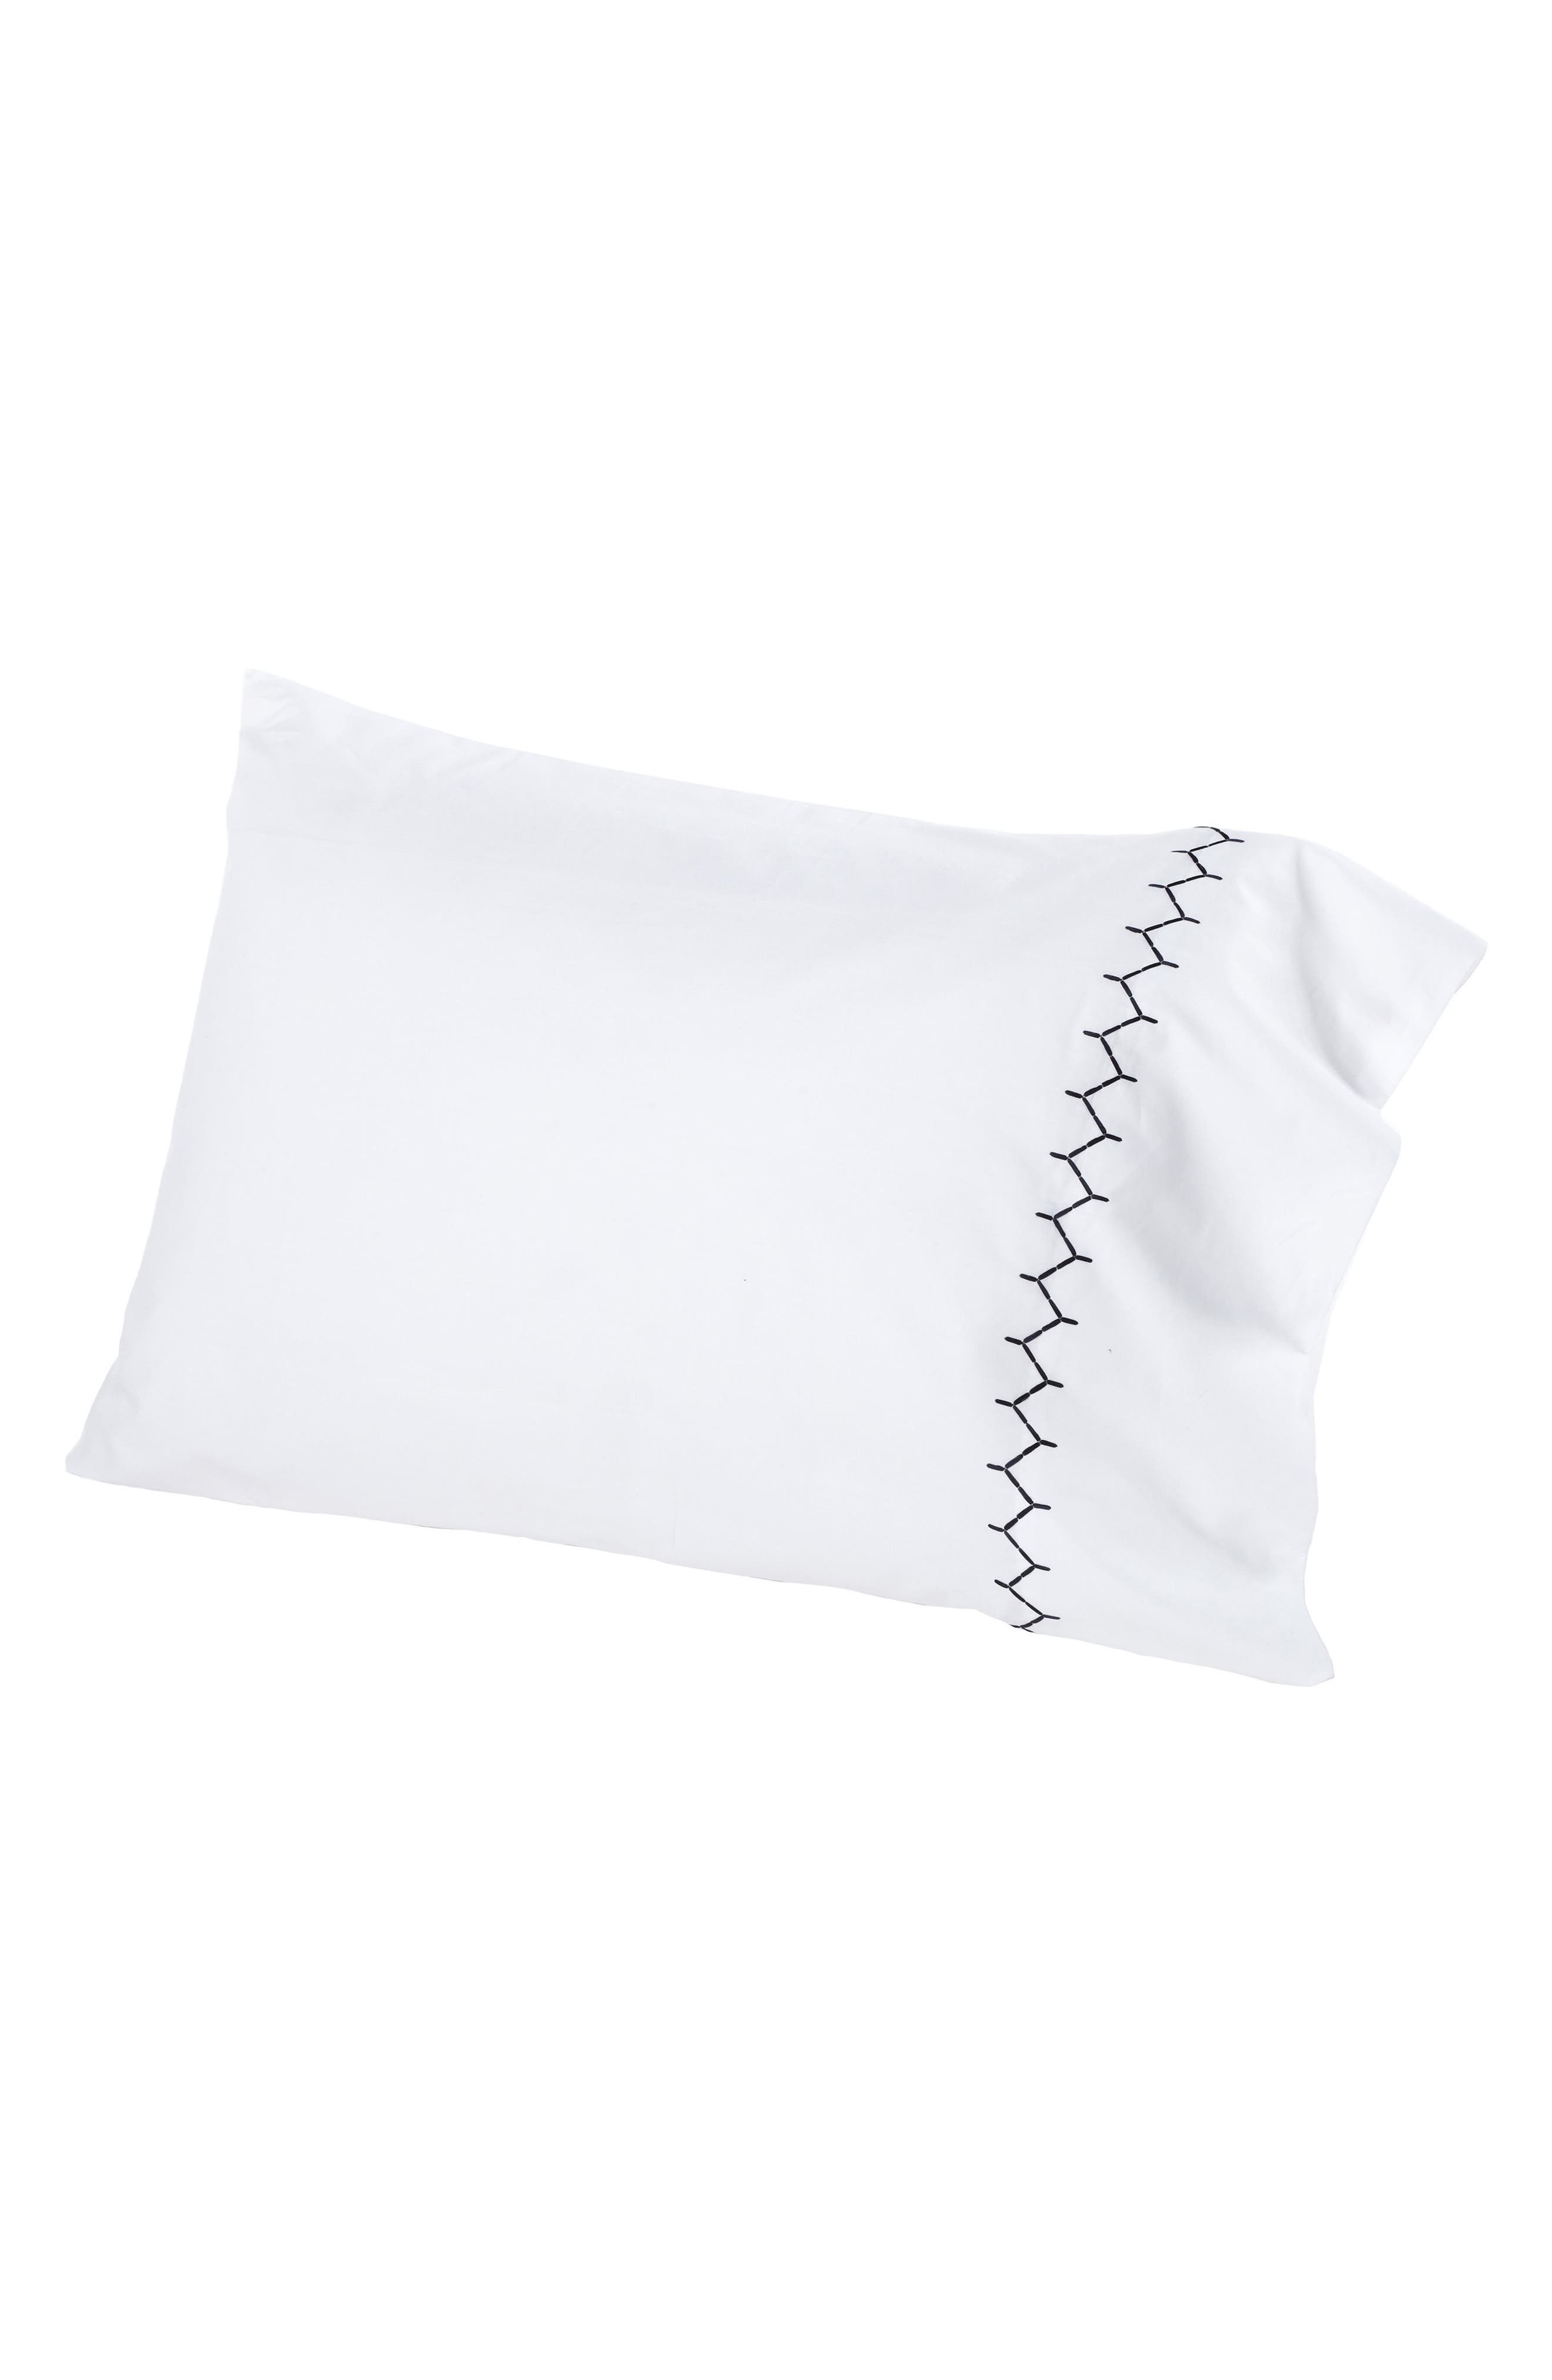 Stitched Set of 2 Combed Cotton Pillow Cases,                         Main,                         color, 100